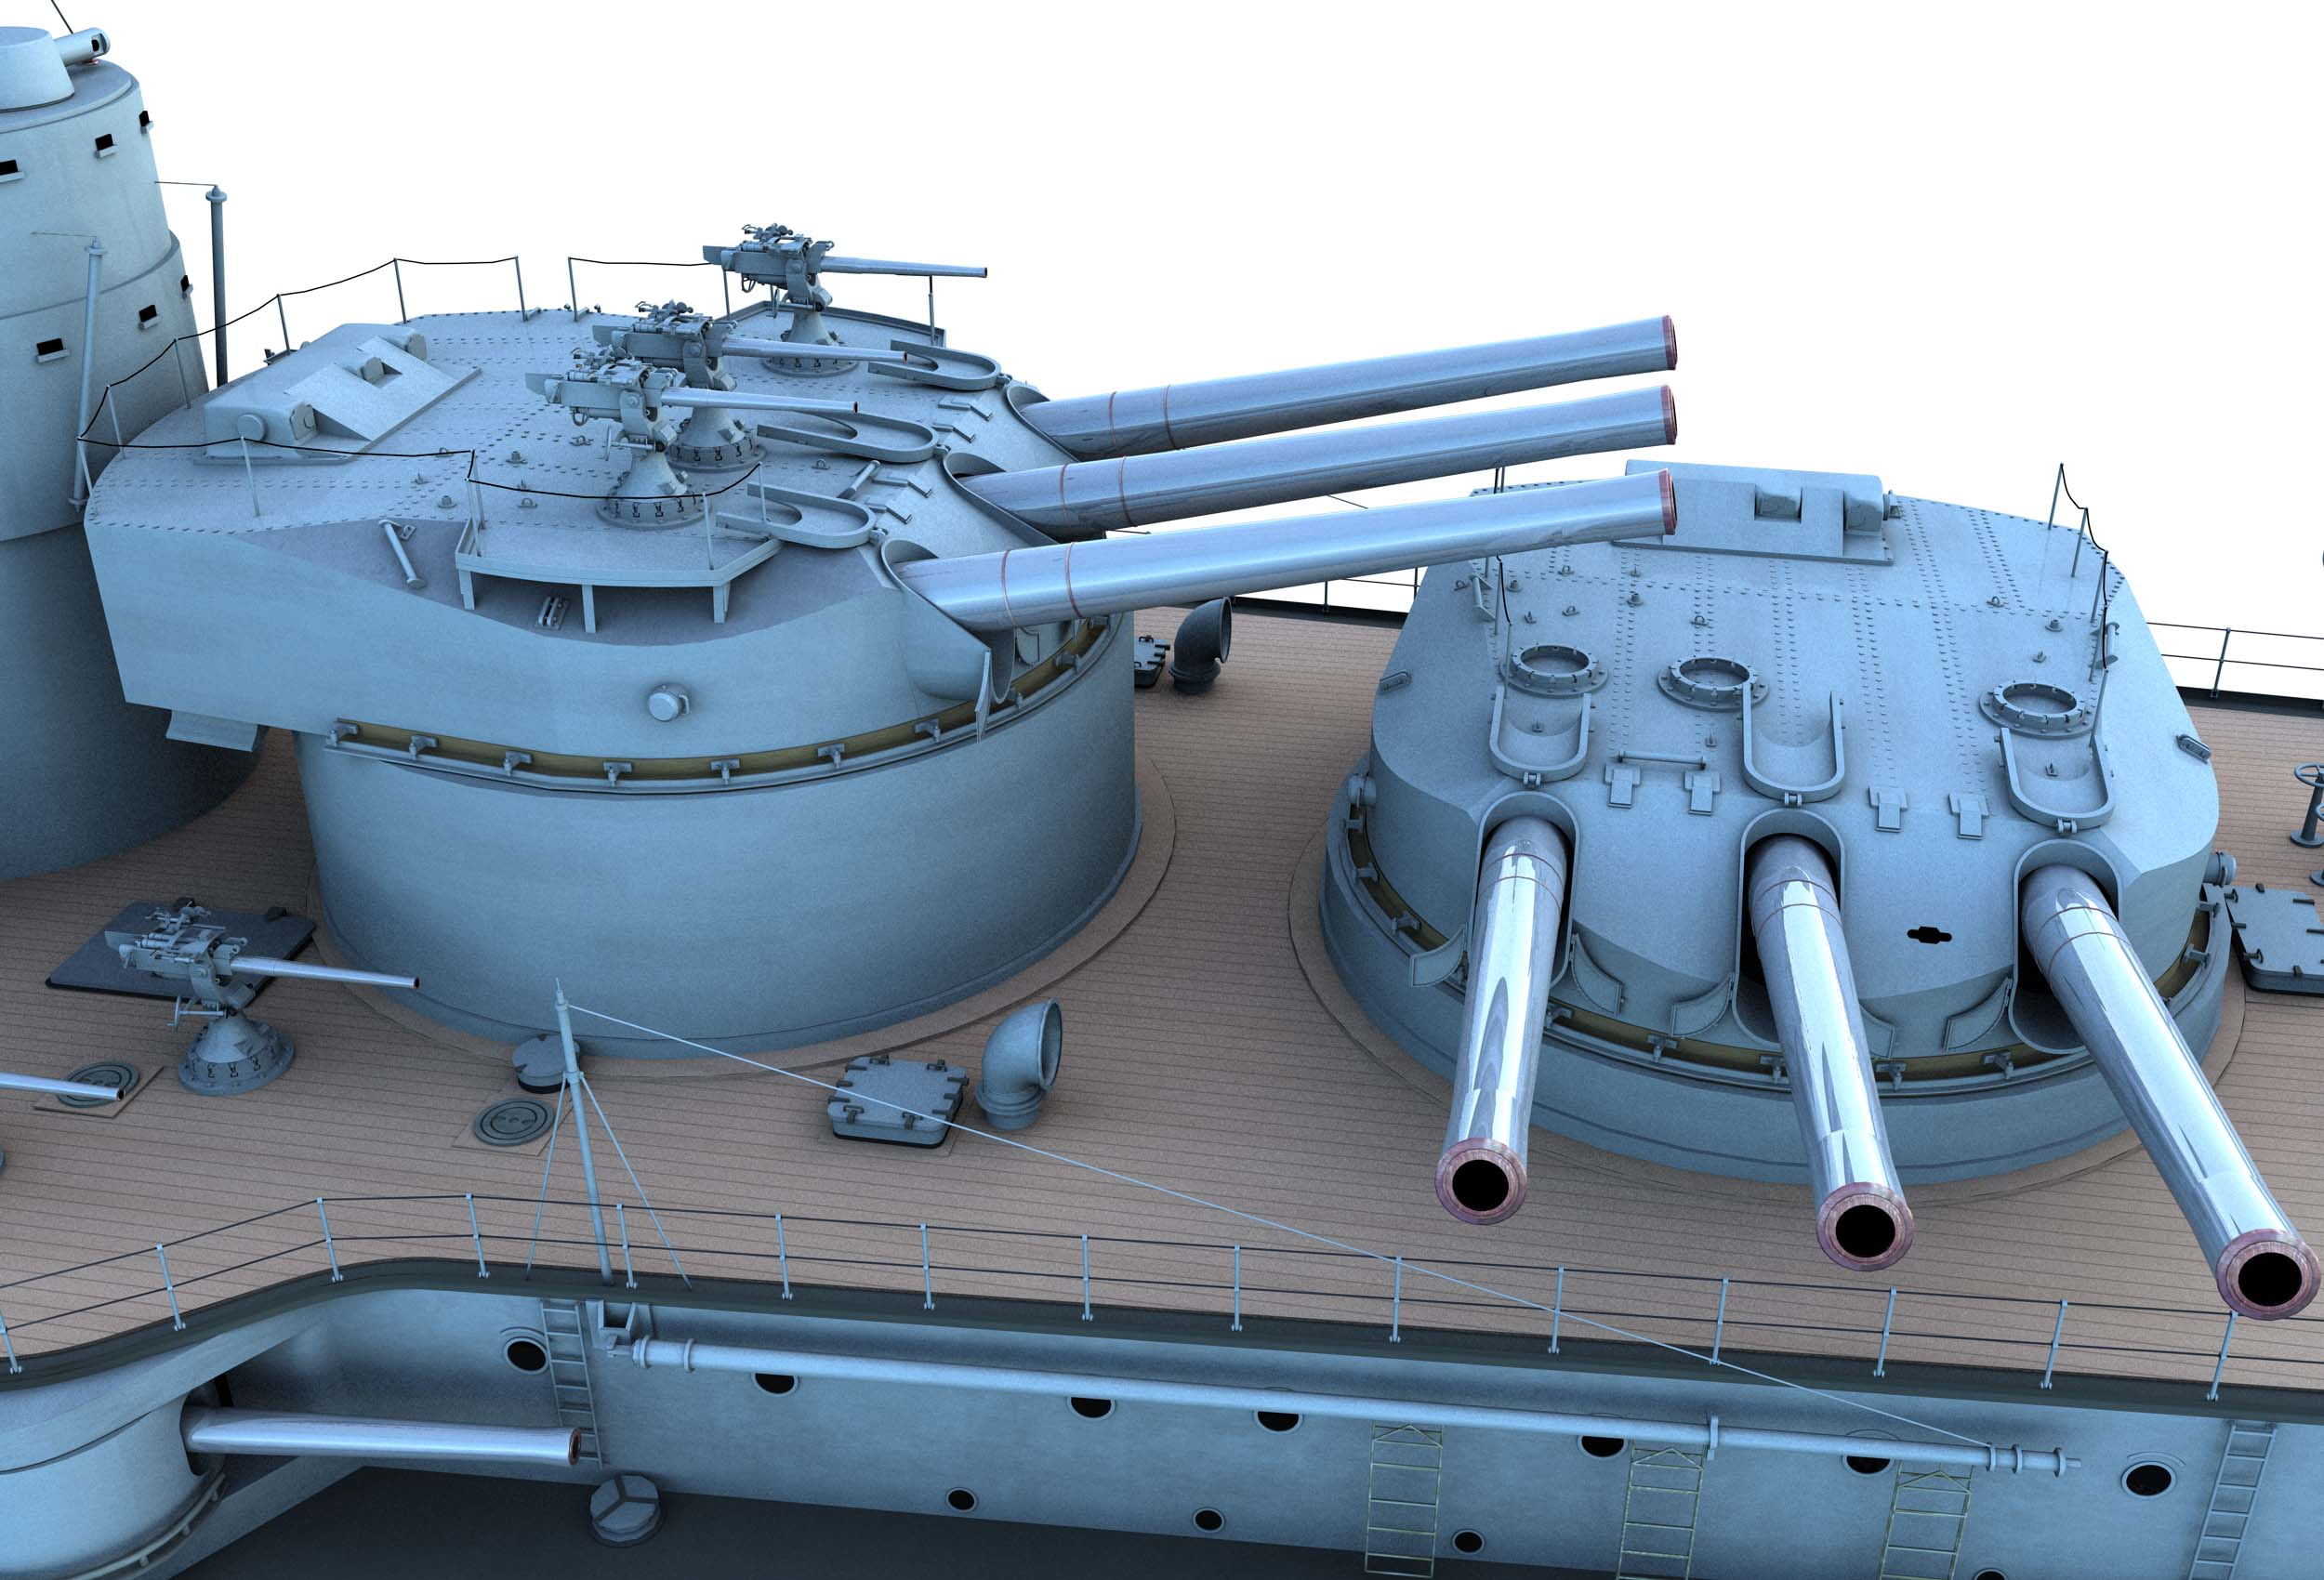 https://0901.nccdn.net/4_2/000/000/01e/20c/CK7-Partial-Ship-Bow-Starboard-Turrets-I-and-II.jpg